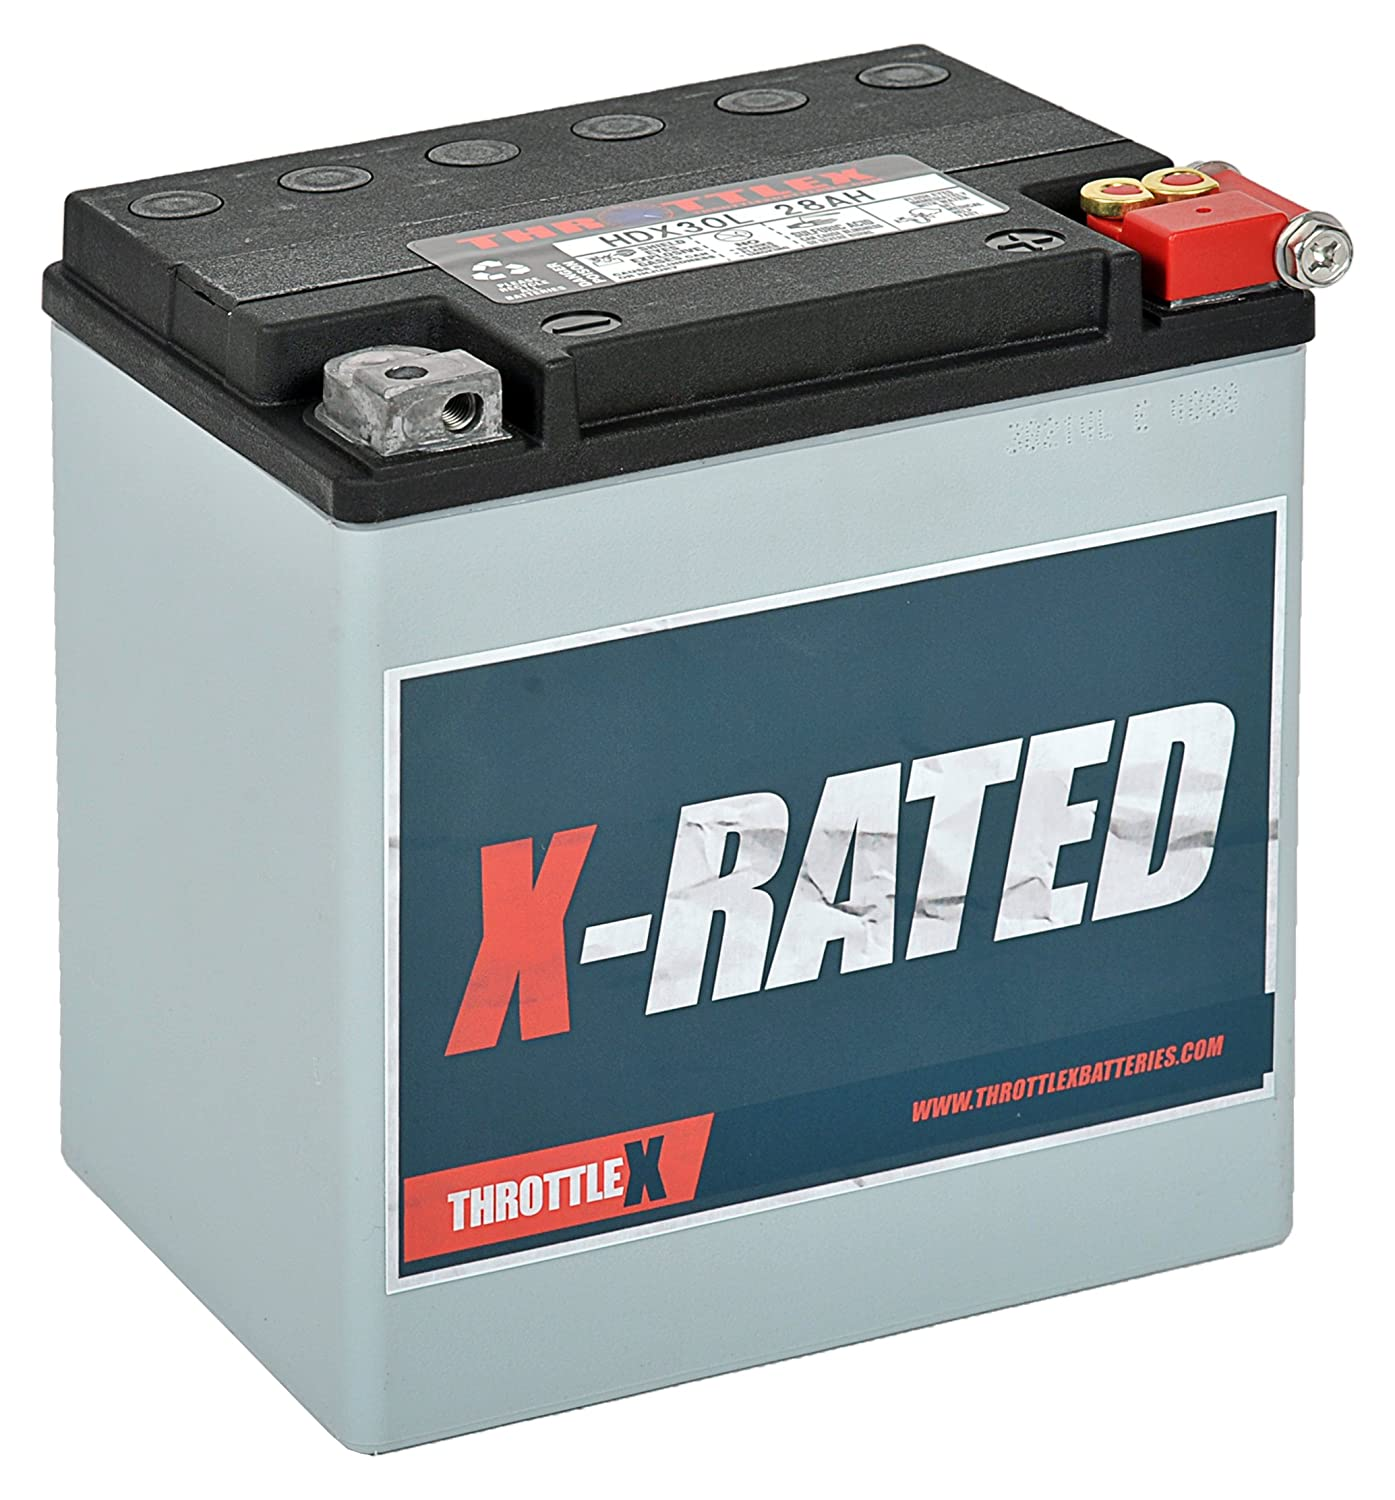 THROTTLEX HDX30L Replacement Motorcycle Battery